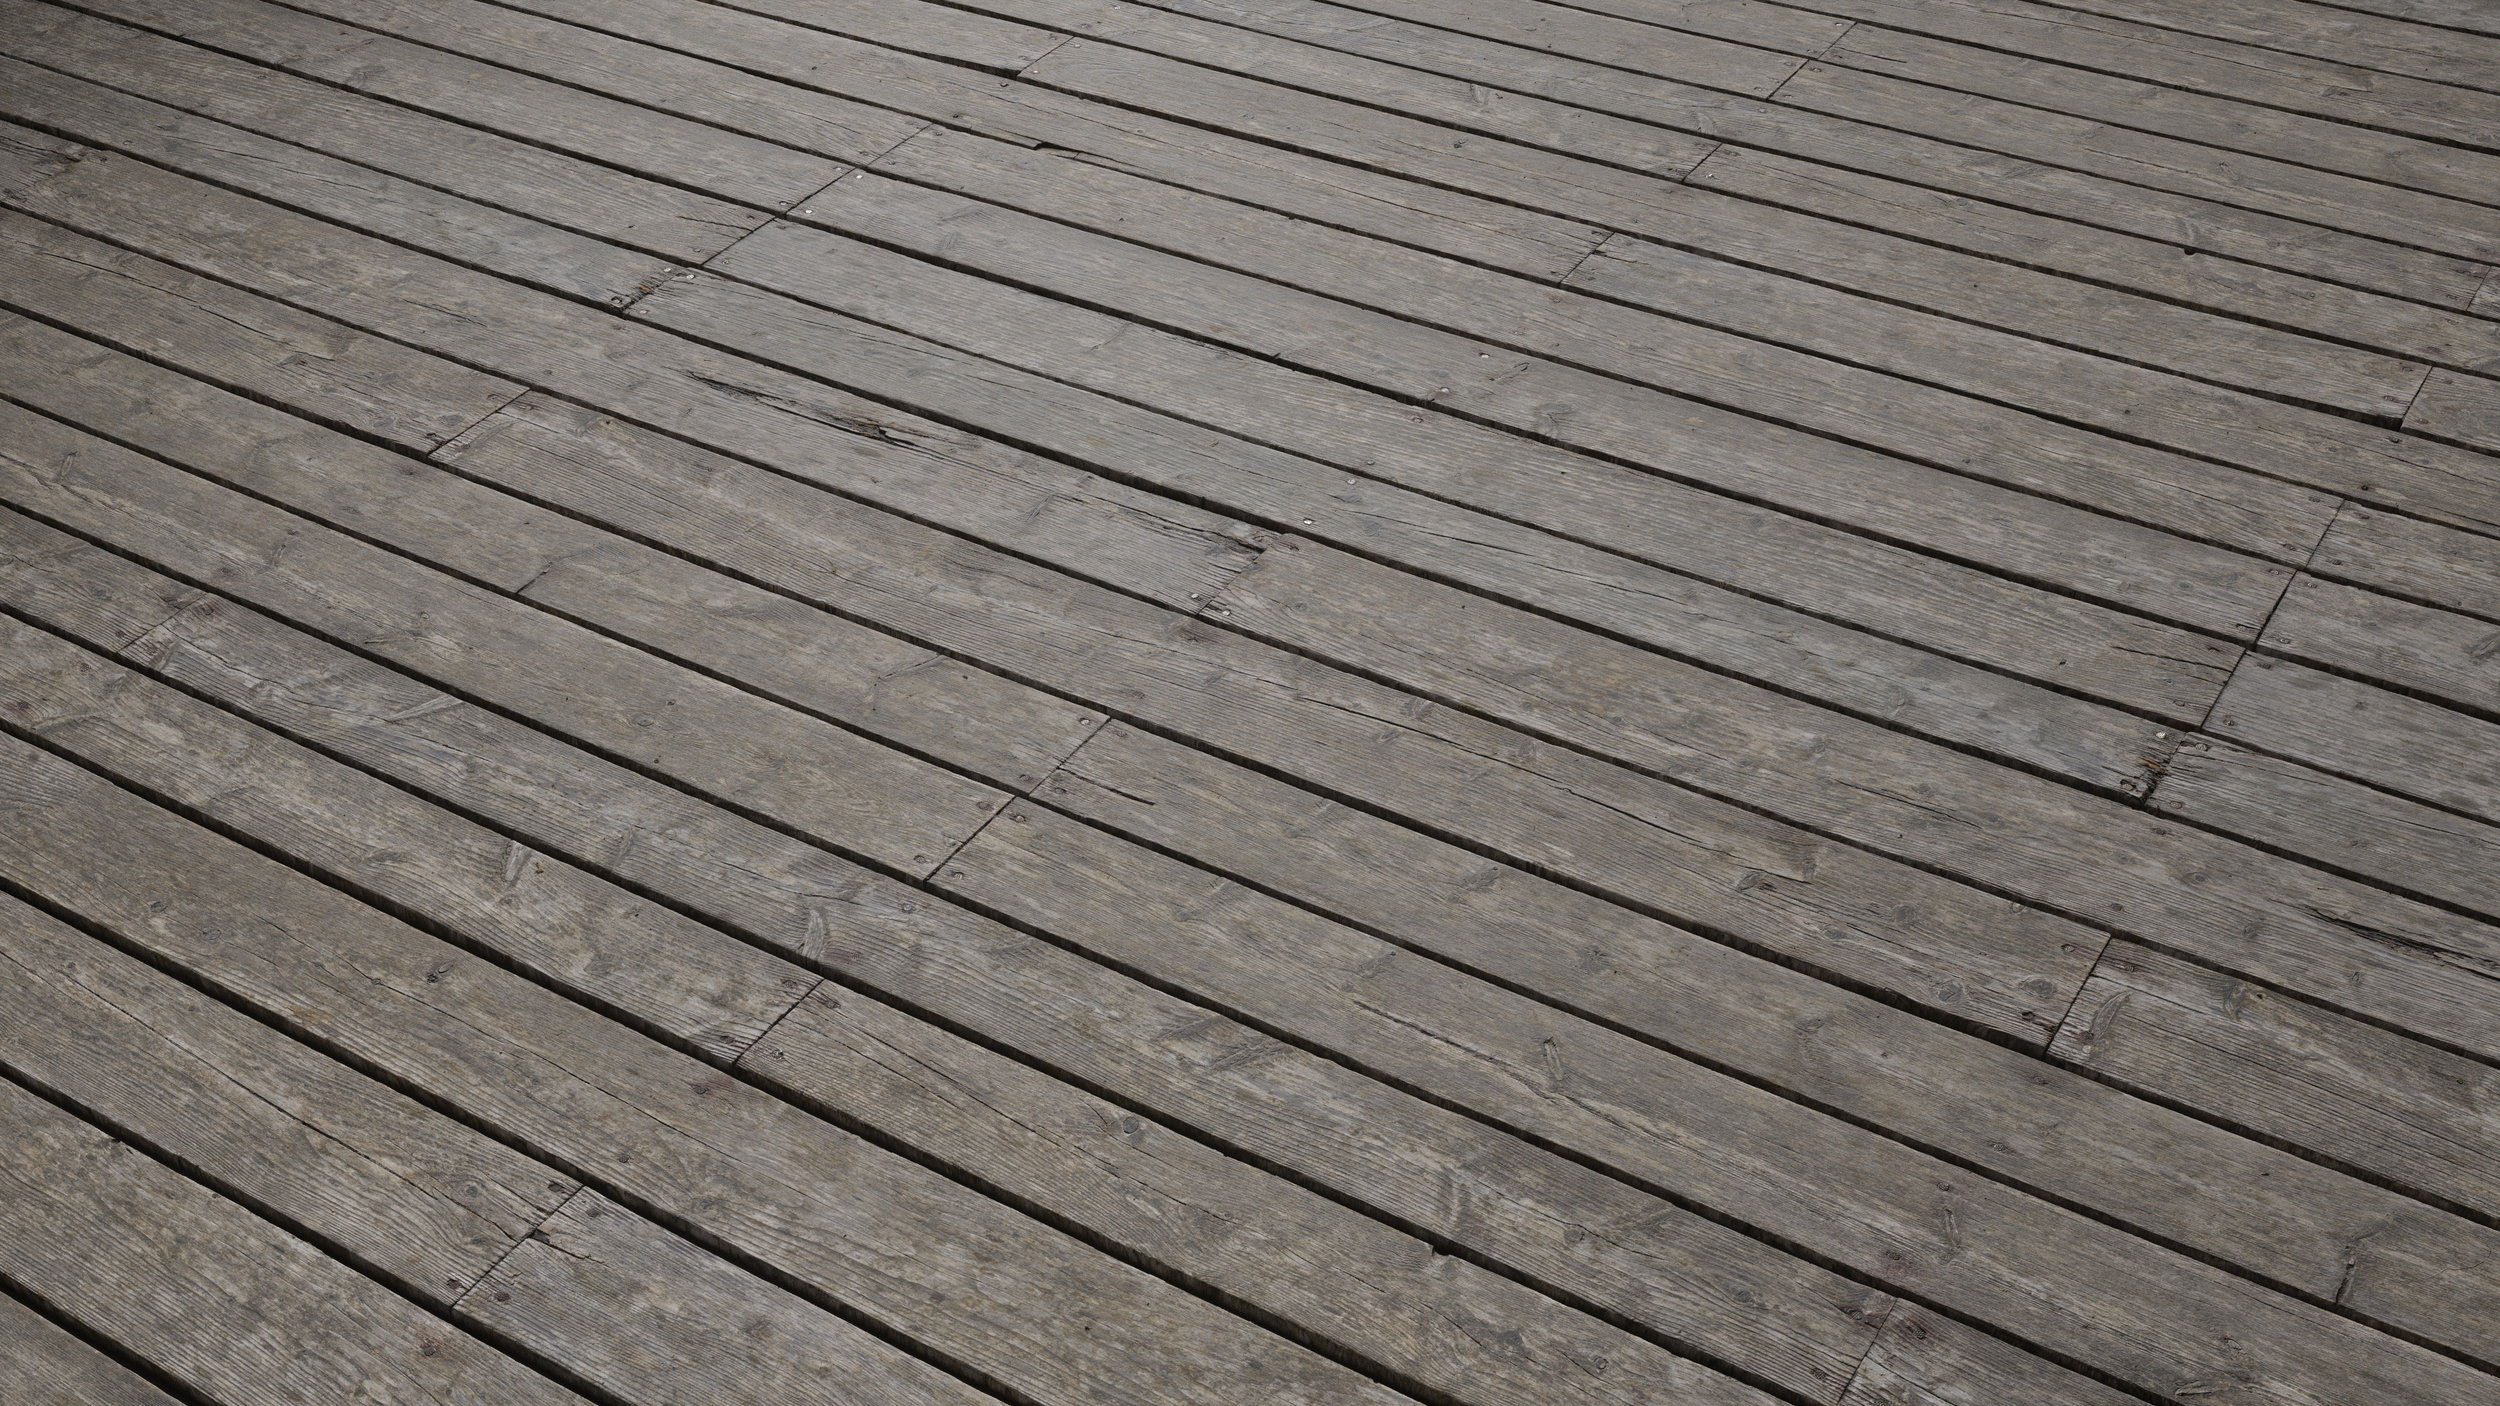 TexturesCom_Old_Planks_2_header.jpg